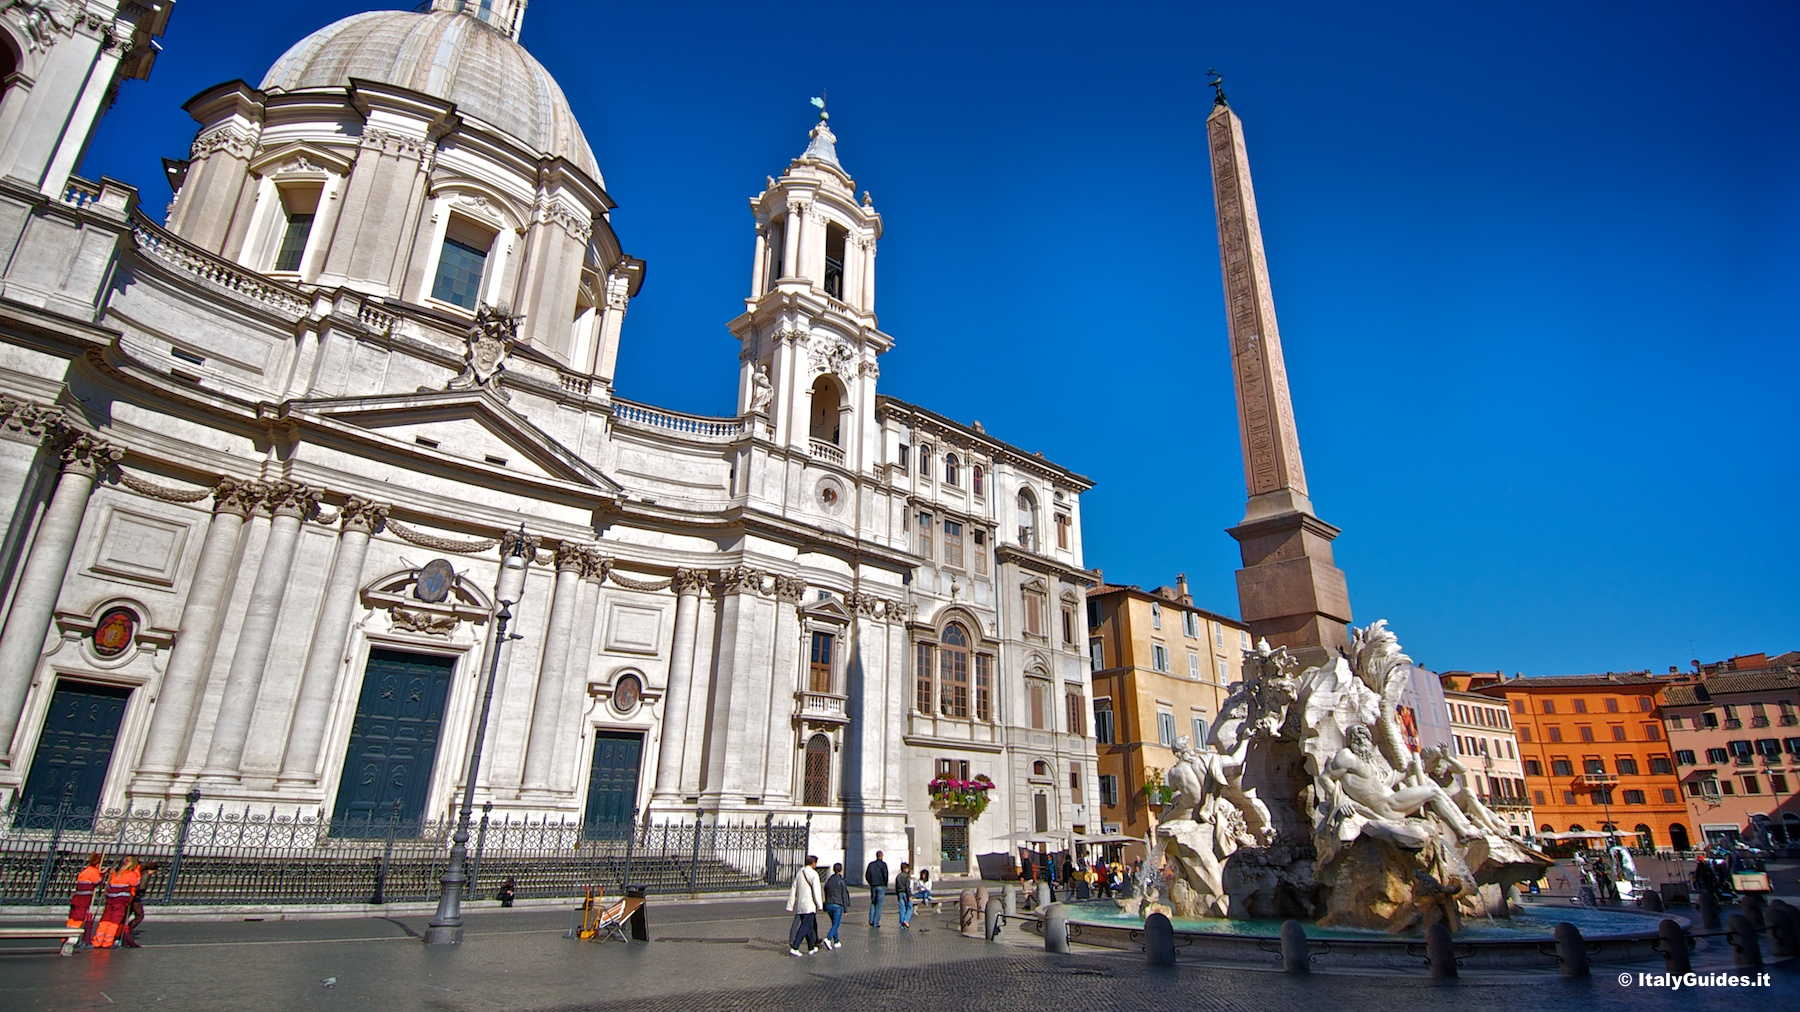 map apps iphone with Pictures Of Piazza Navona on Pictures Of The Pantheon together with Star Walk 2 Stargazing Tool likewise Las 10 Mejores Brujulas Para Iphone Y Ipad moreover Pappy Boyington F4u Corsair Map Background Craig Tinder as well torontoislandferryfinder.